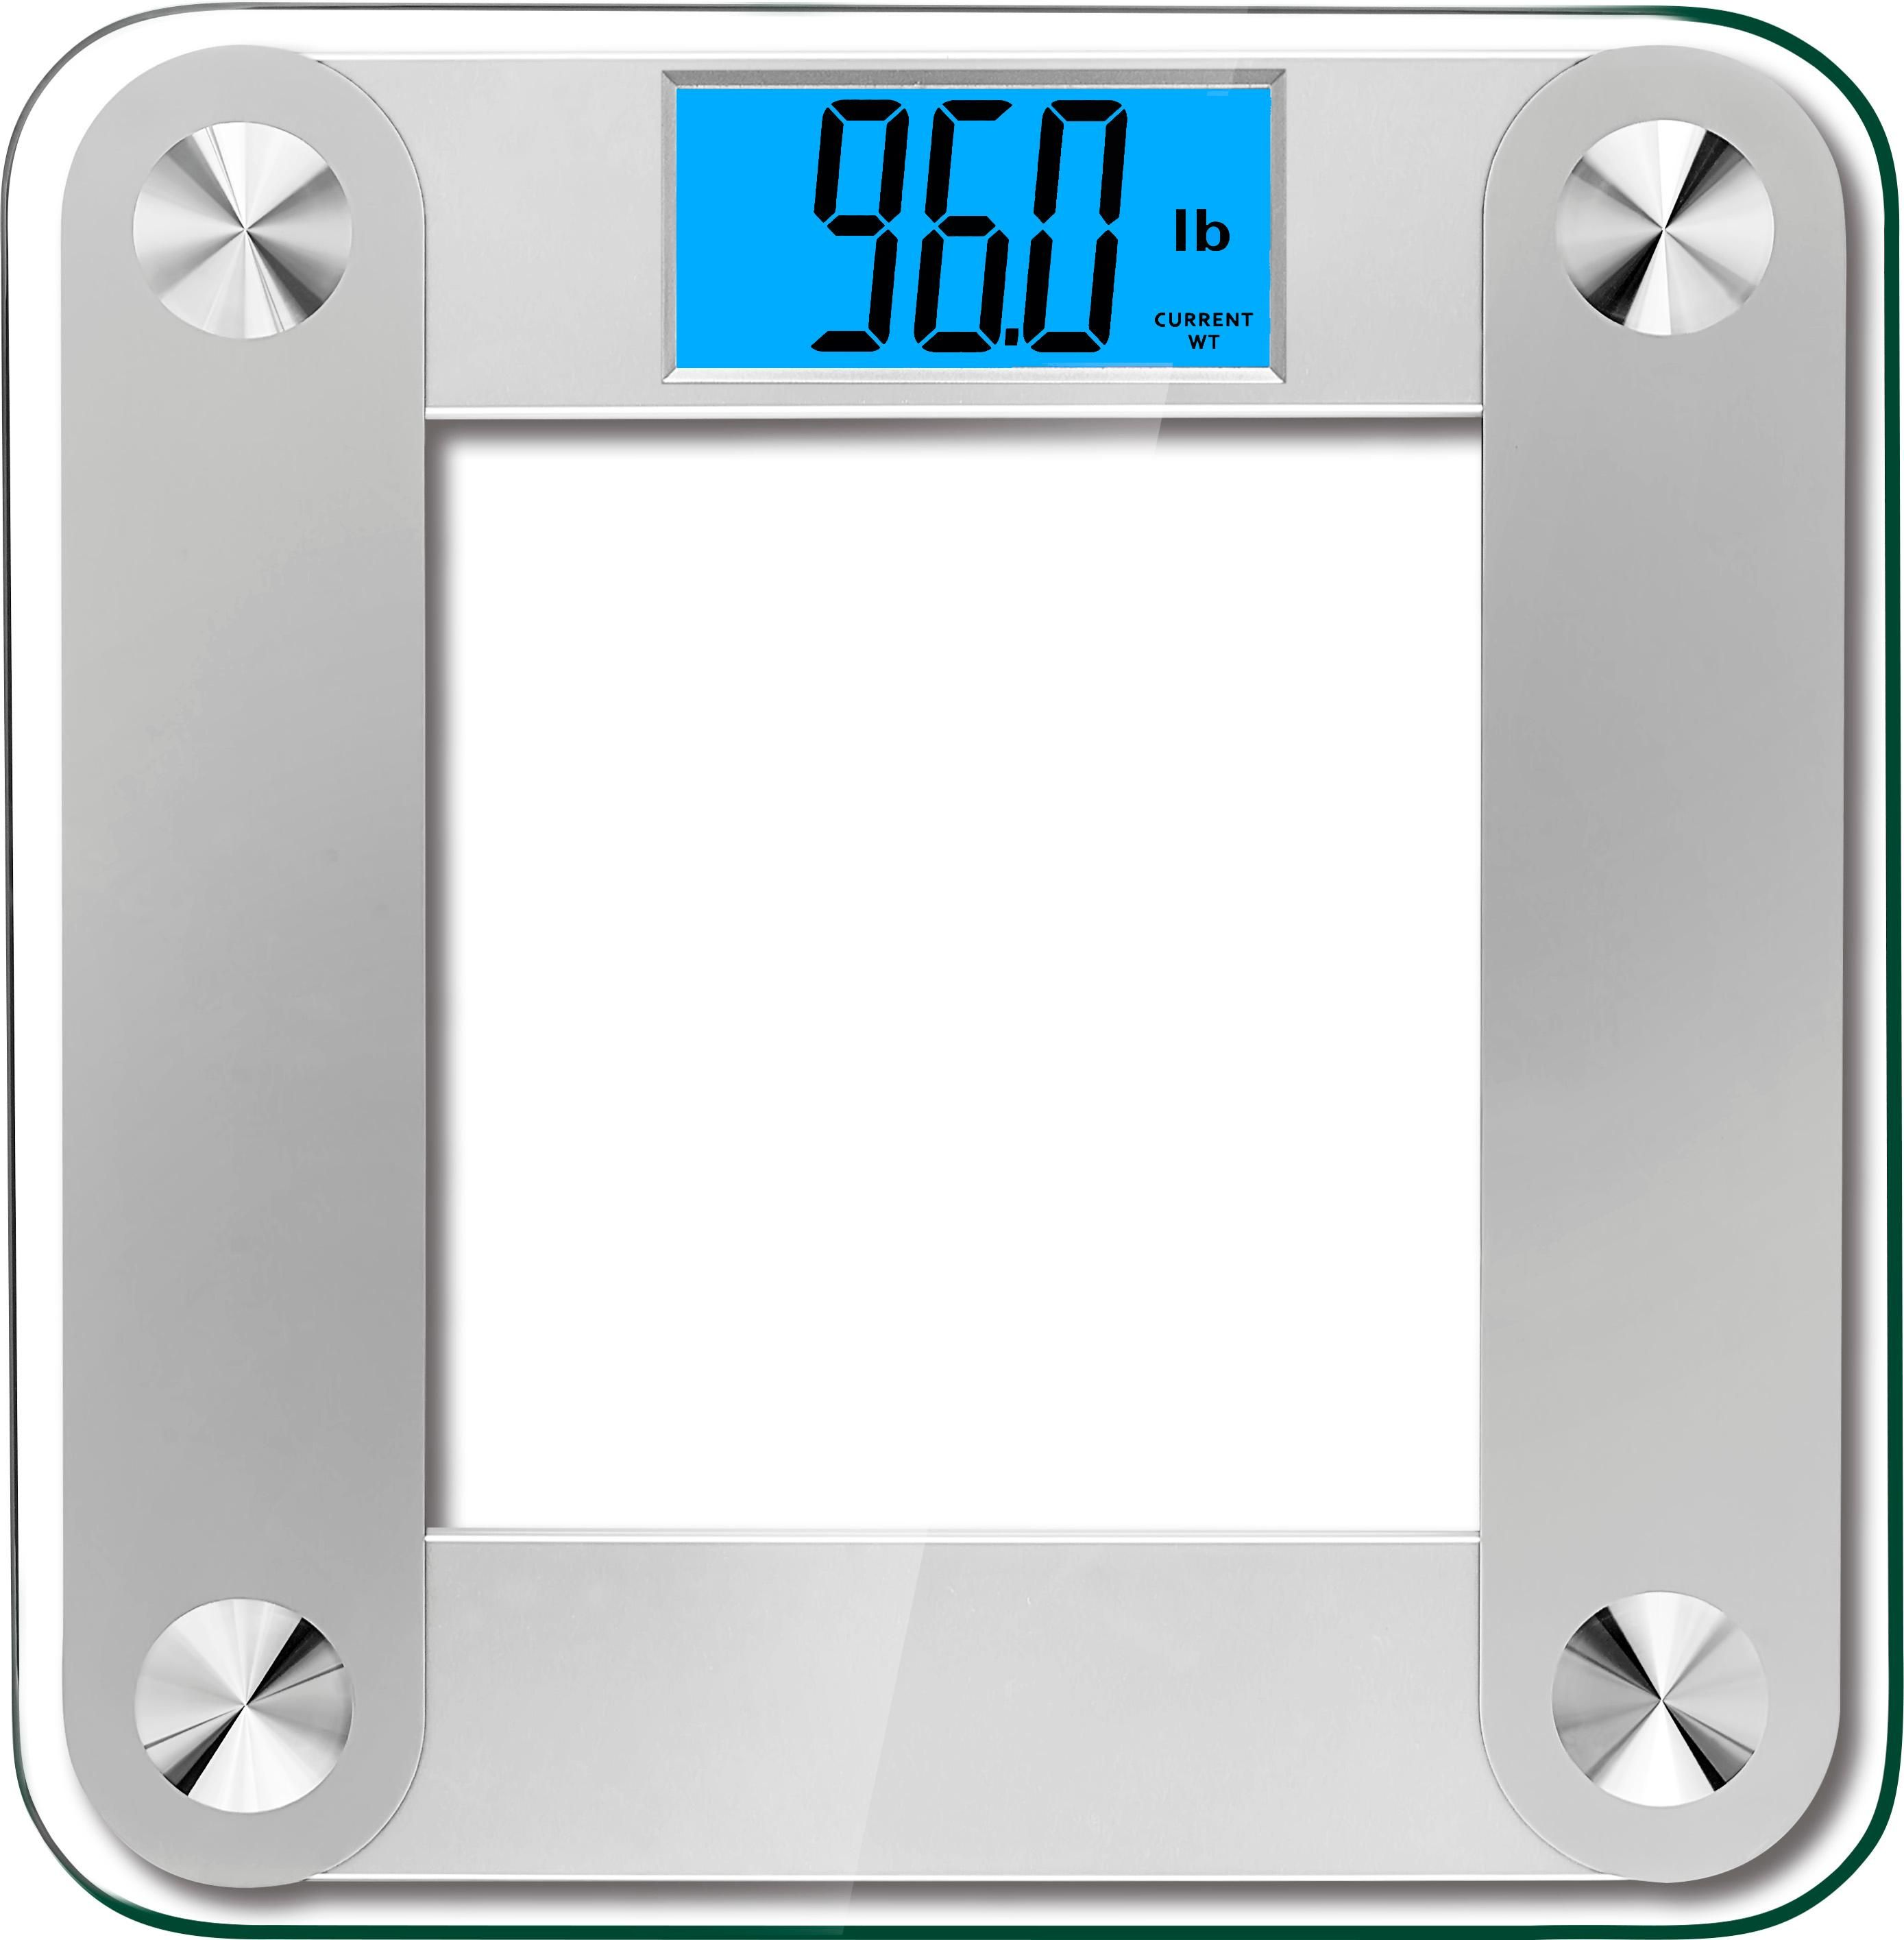 Amazon scale bathroom - Amazon Com Balancefrom High Accuracy Plus Digital Bathroom Scale With 3 6 Inch Large Dual